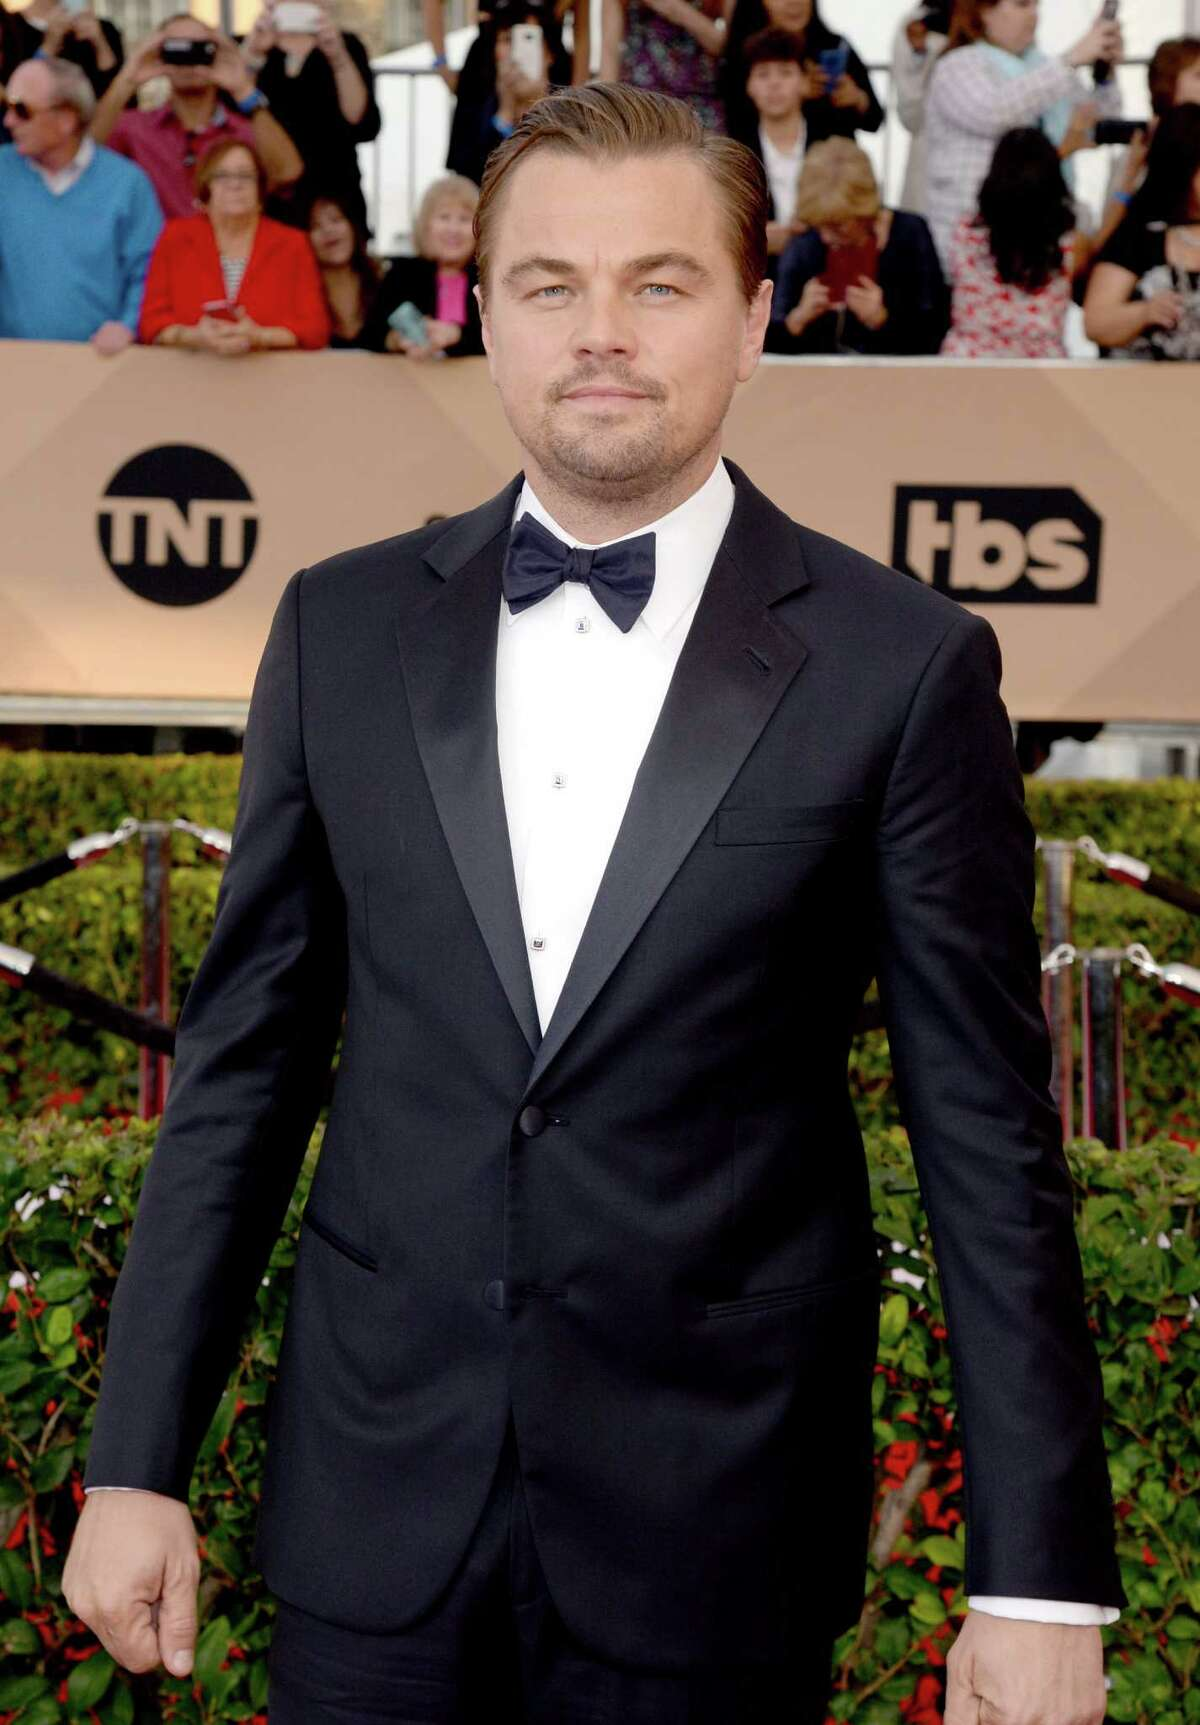 Leonardo DiCaprio. See this link for a complete list of winners. Now, here's a look at the other actors who trod the red carpet at the SAG Awards.